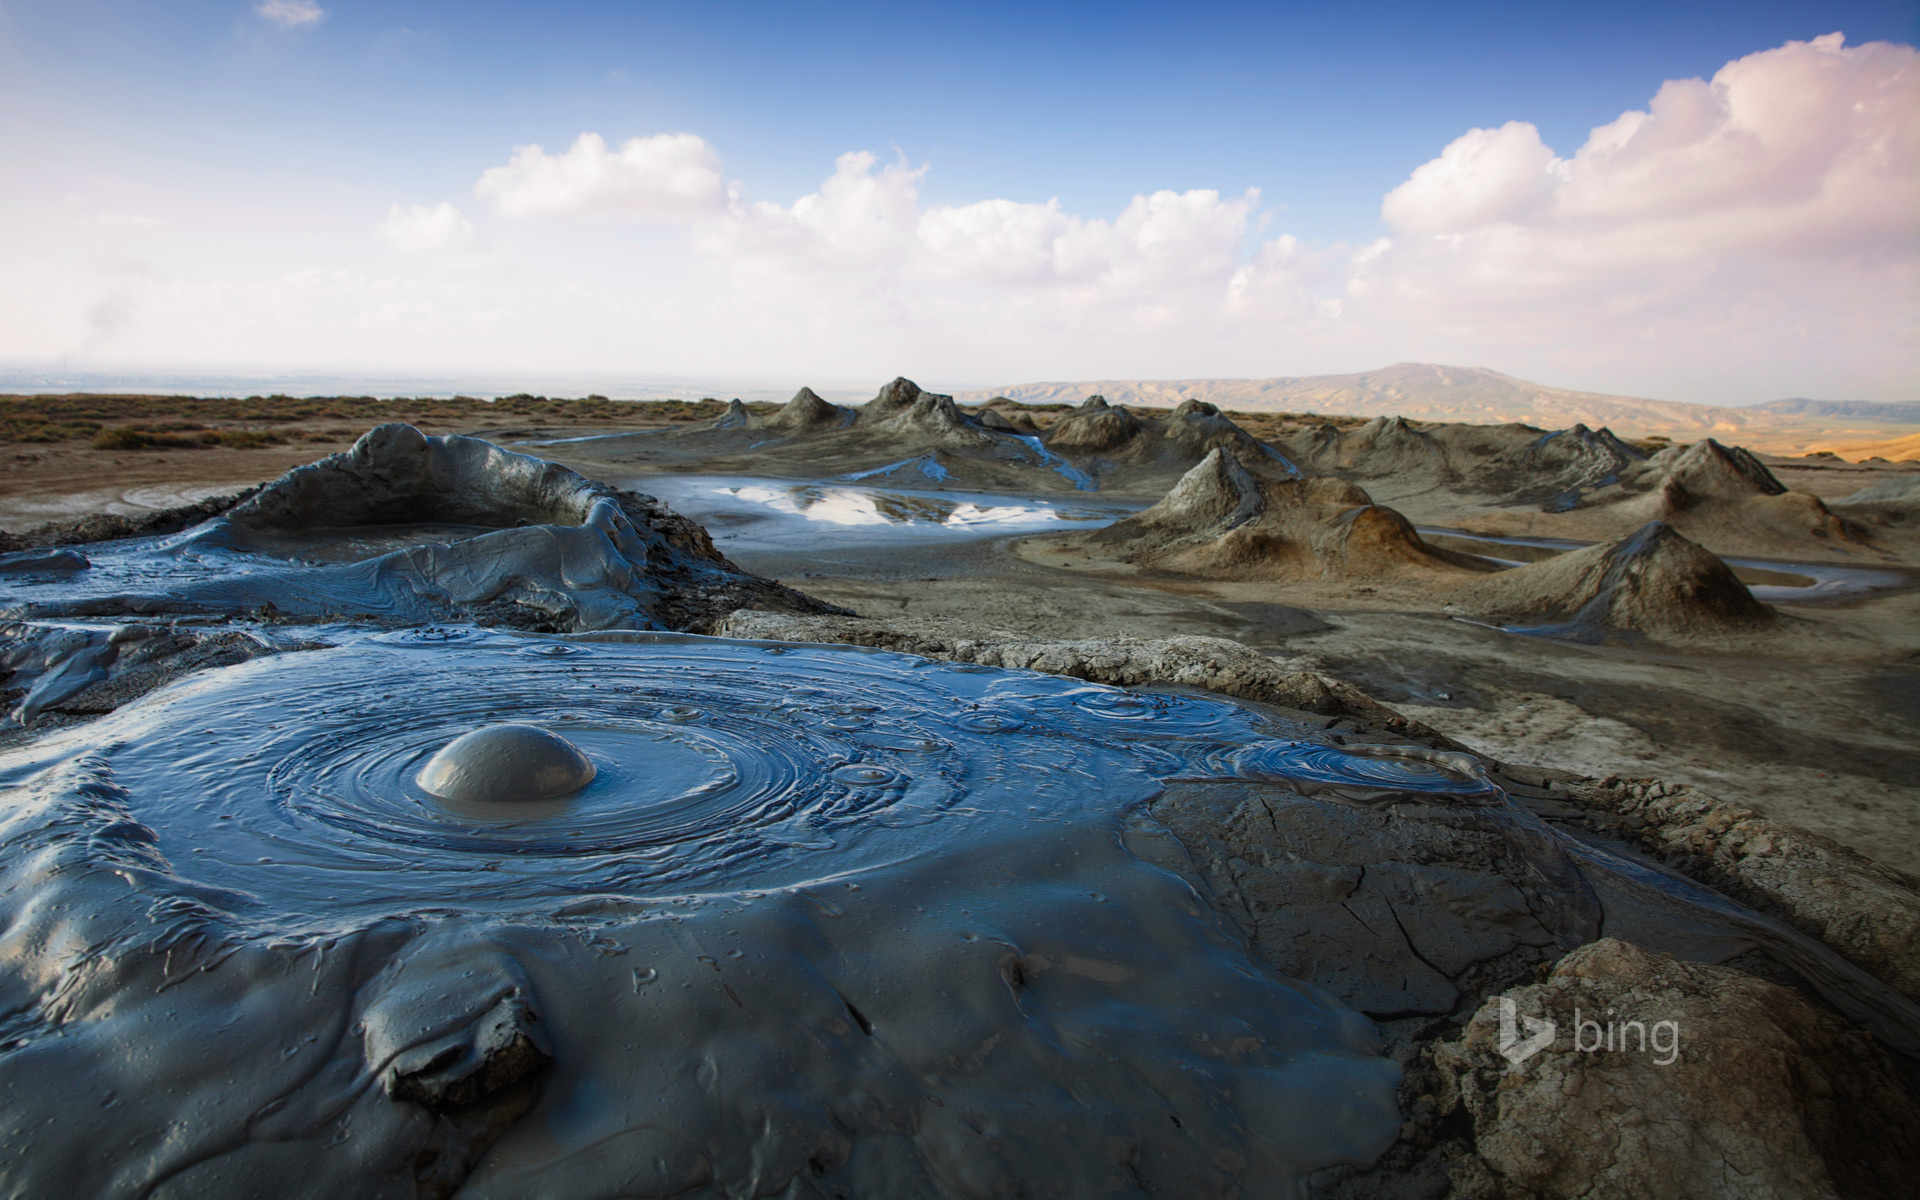 Sky Hd Wallpaper Mud Volcanoes In Gobustan National Park Azerbaijan